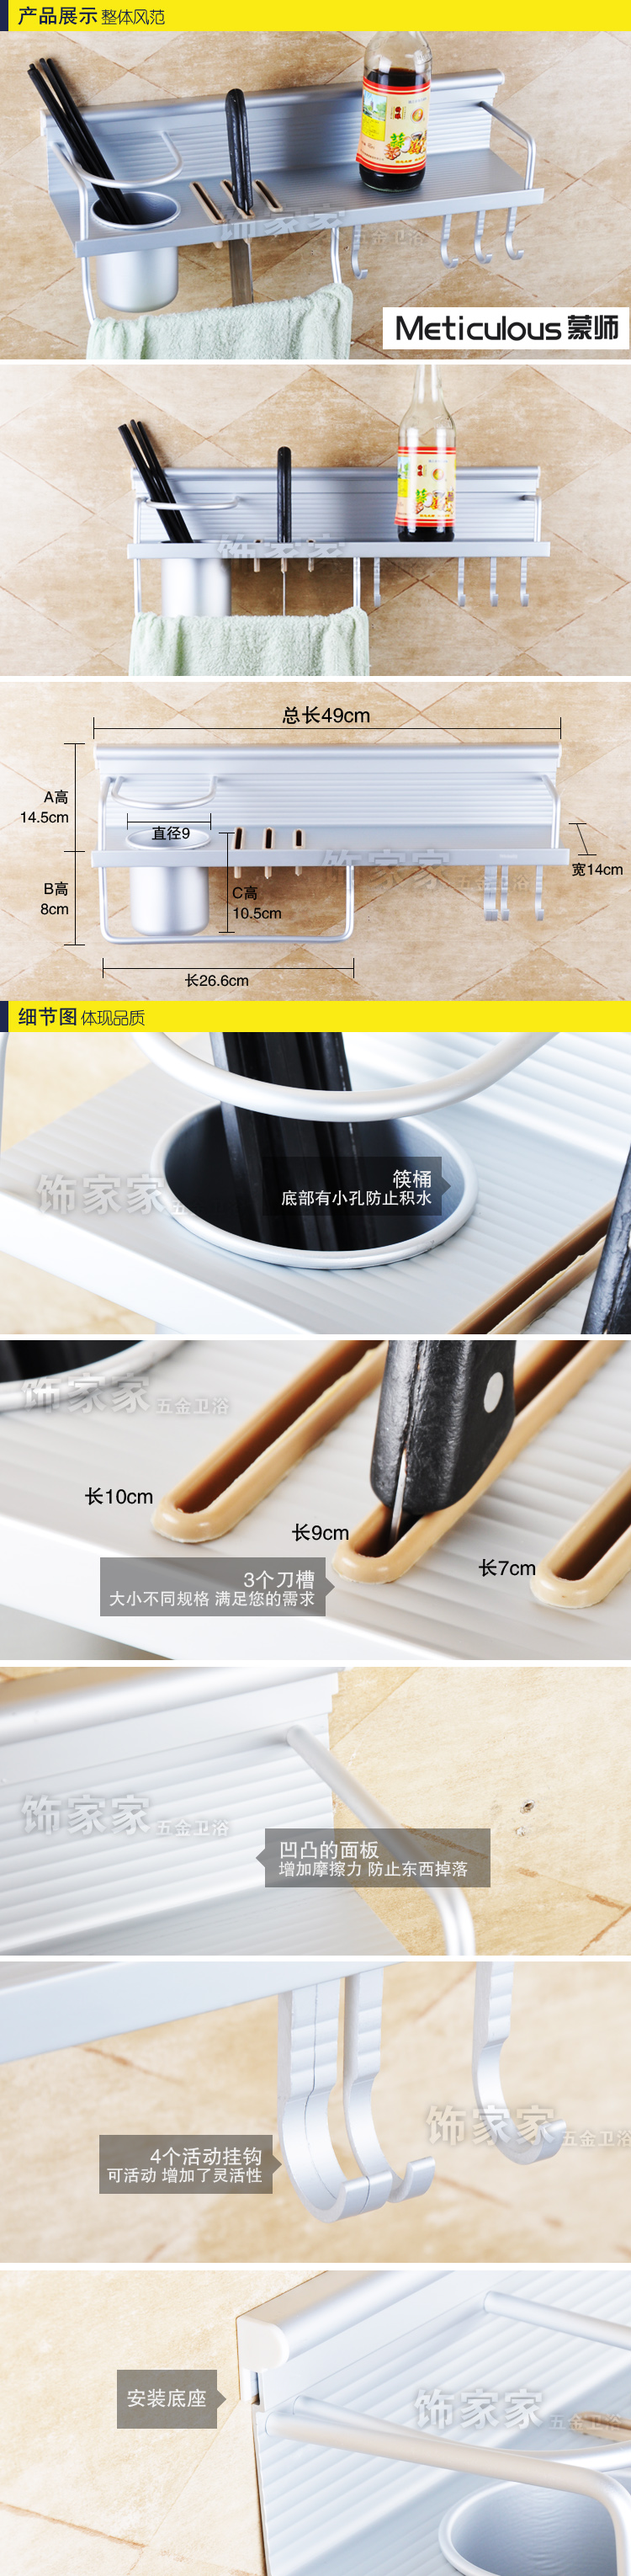 Mongolian division [Everyone] Mongolia Normal decorated space aluminum kitchen accessories racks with chopsticks basket hook knife Free Shipping